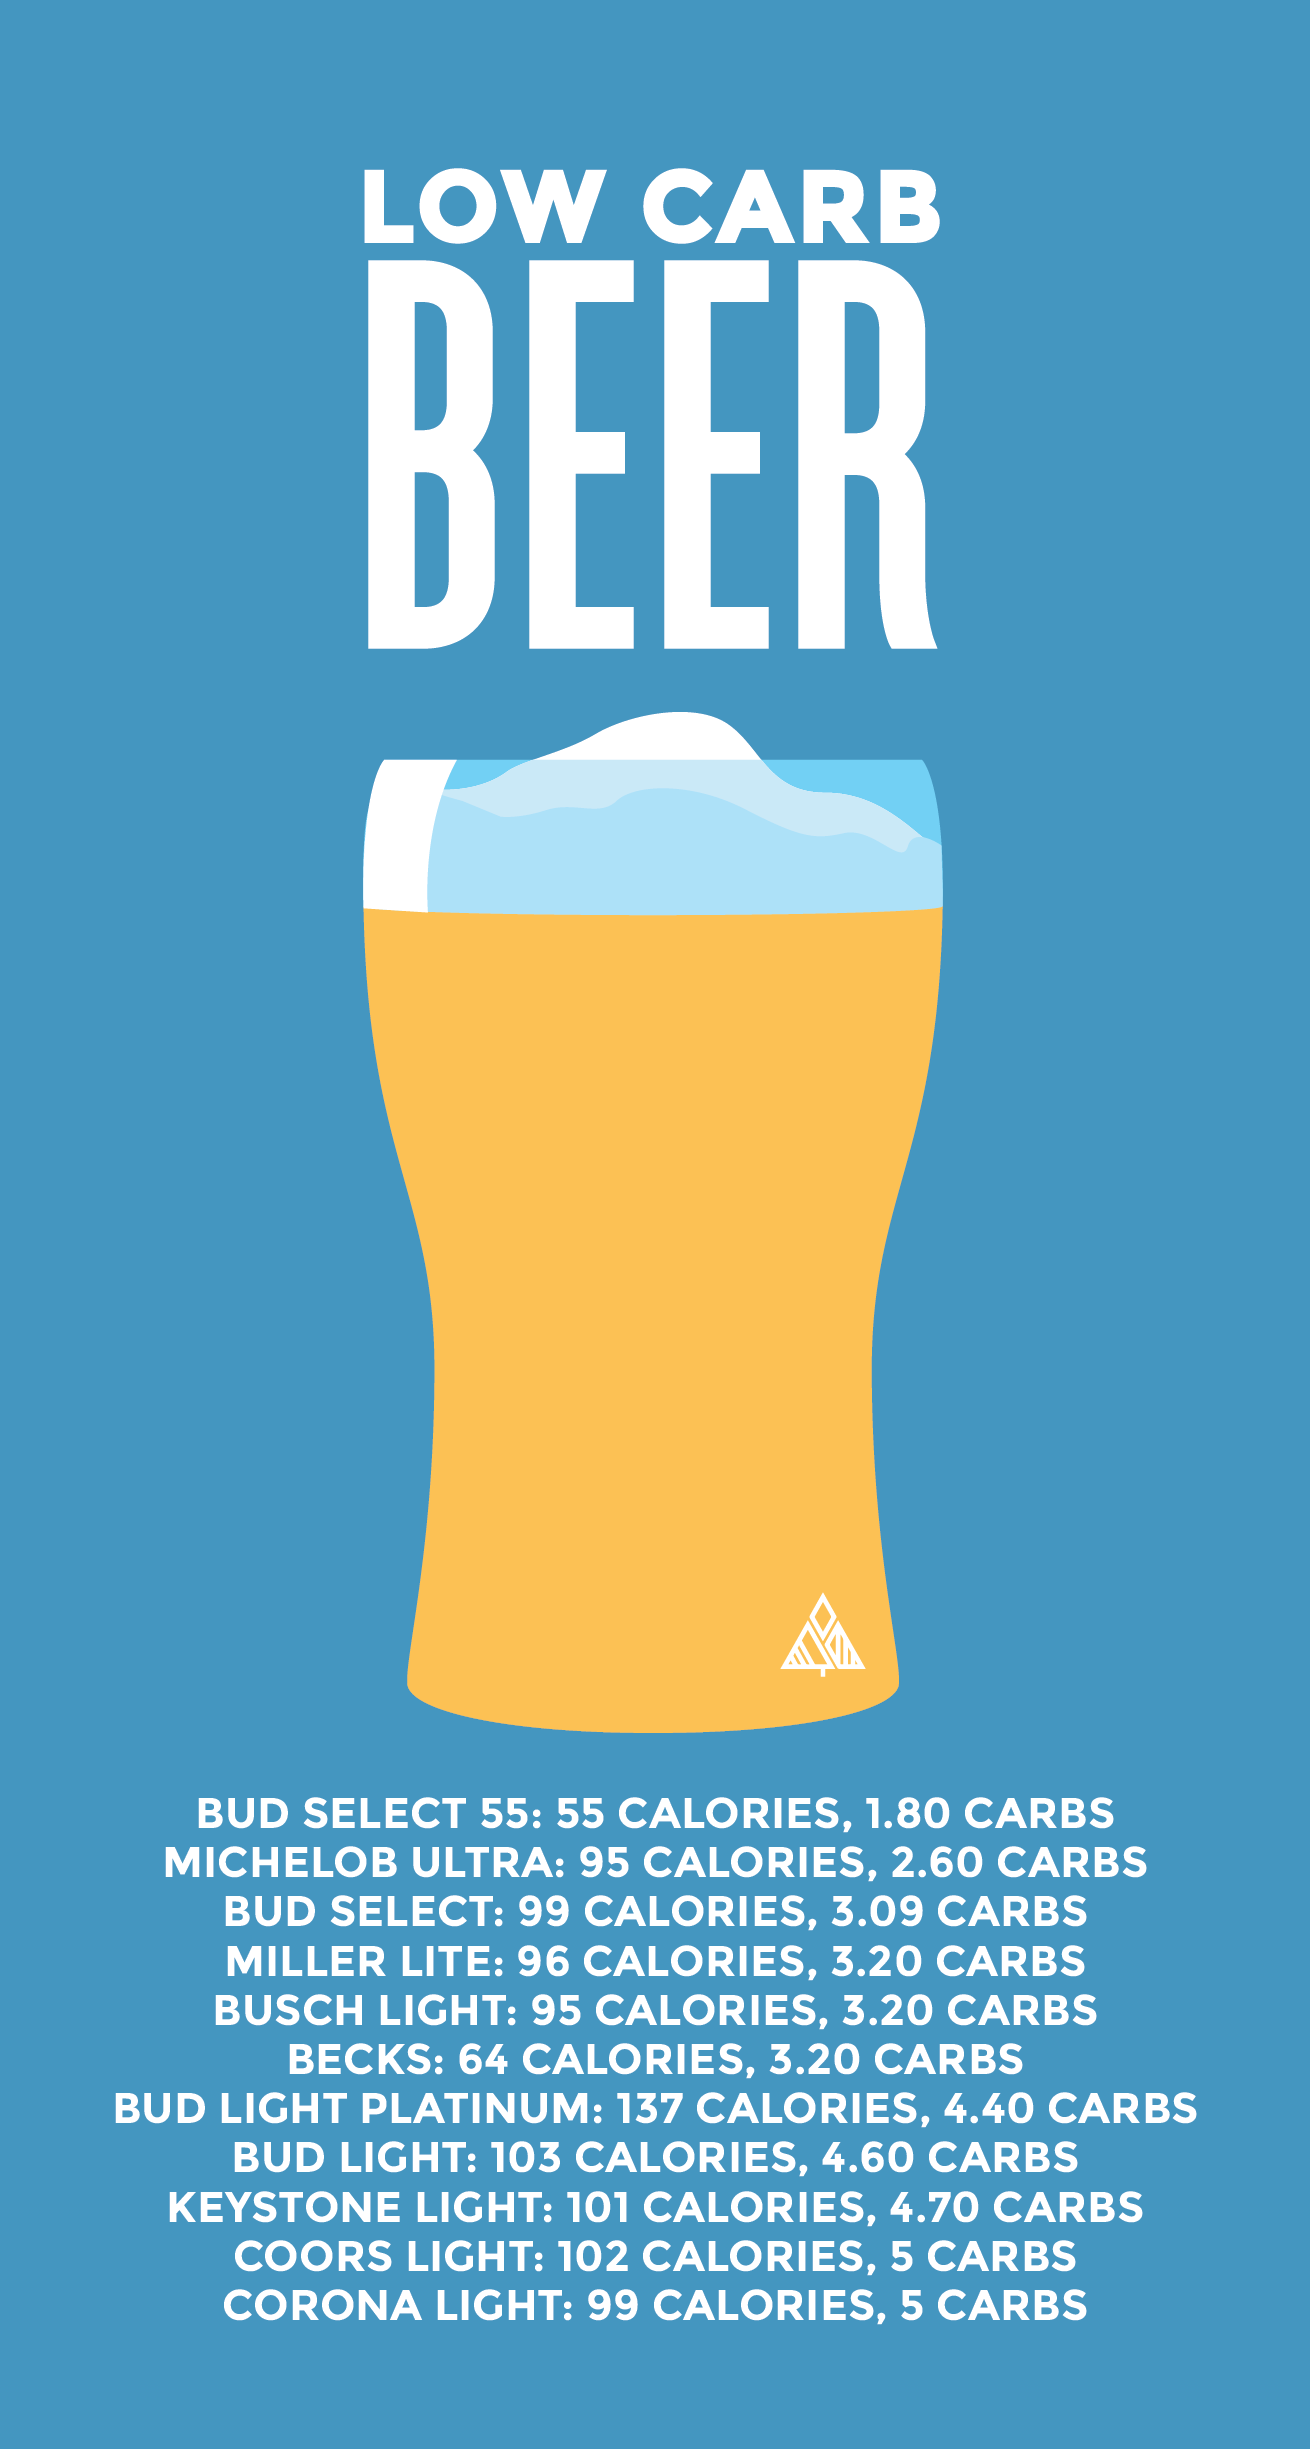 a list of low carb beer with the calorie and carb count